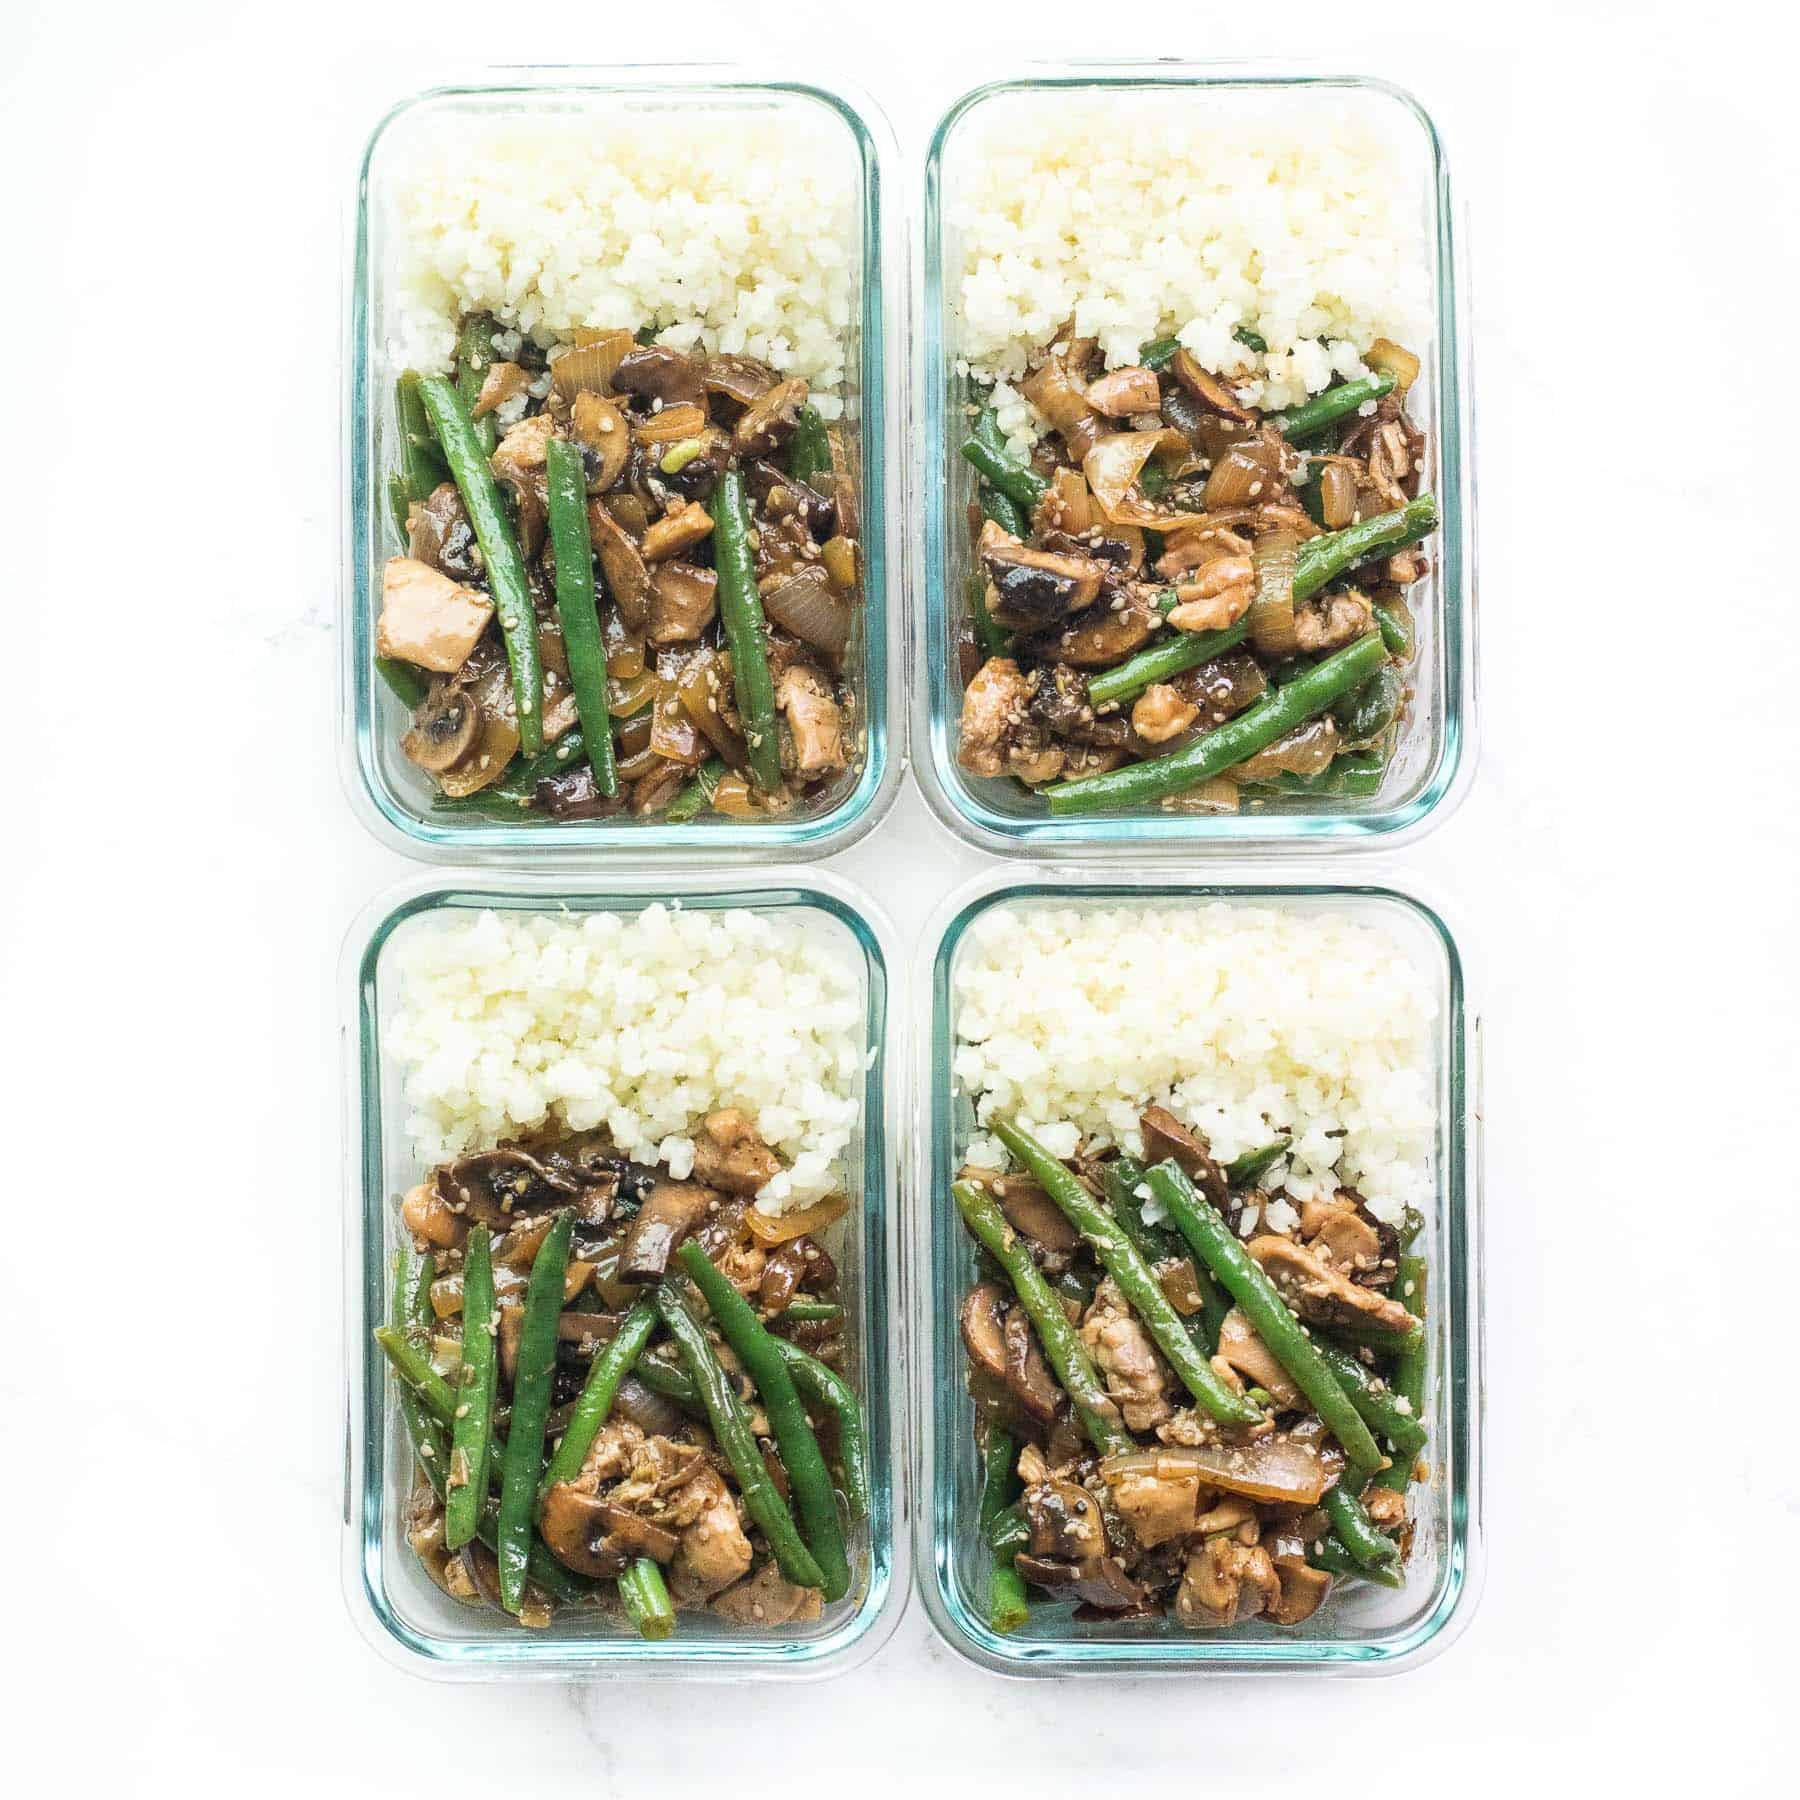 meal prep containers holding sesame chicken green bean stir fry